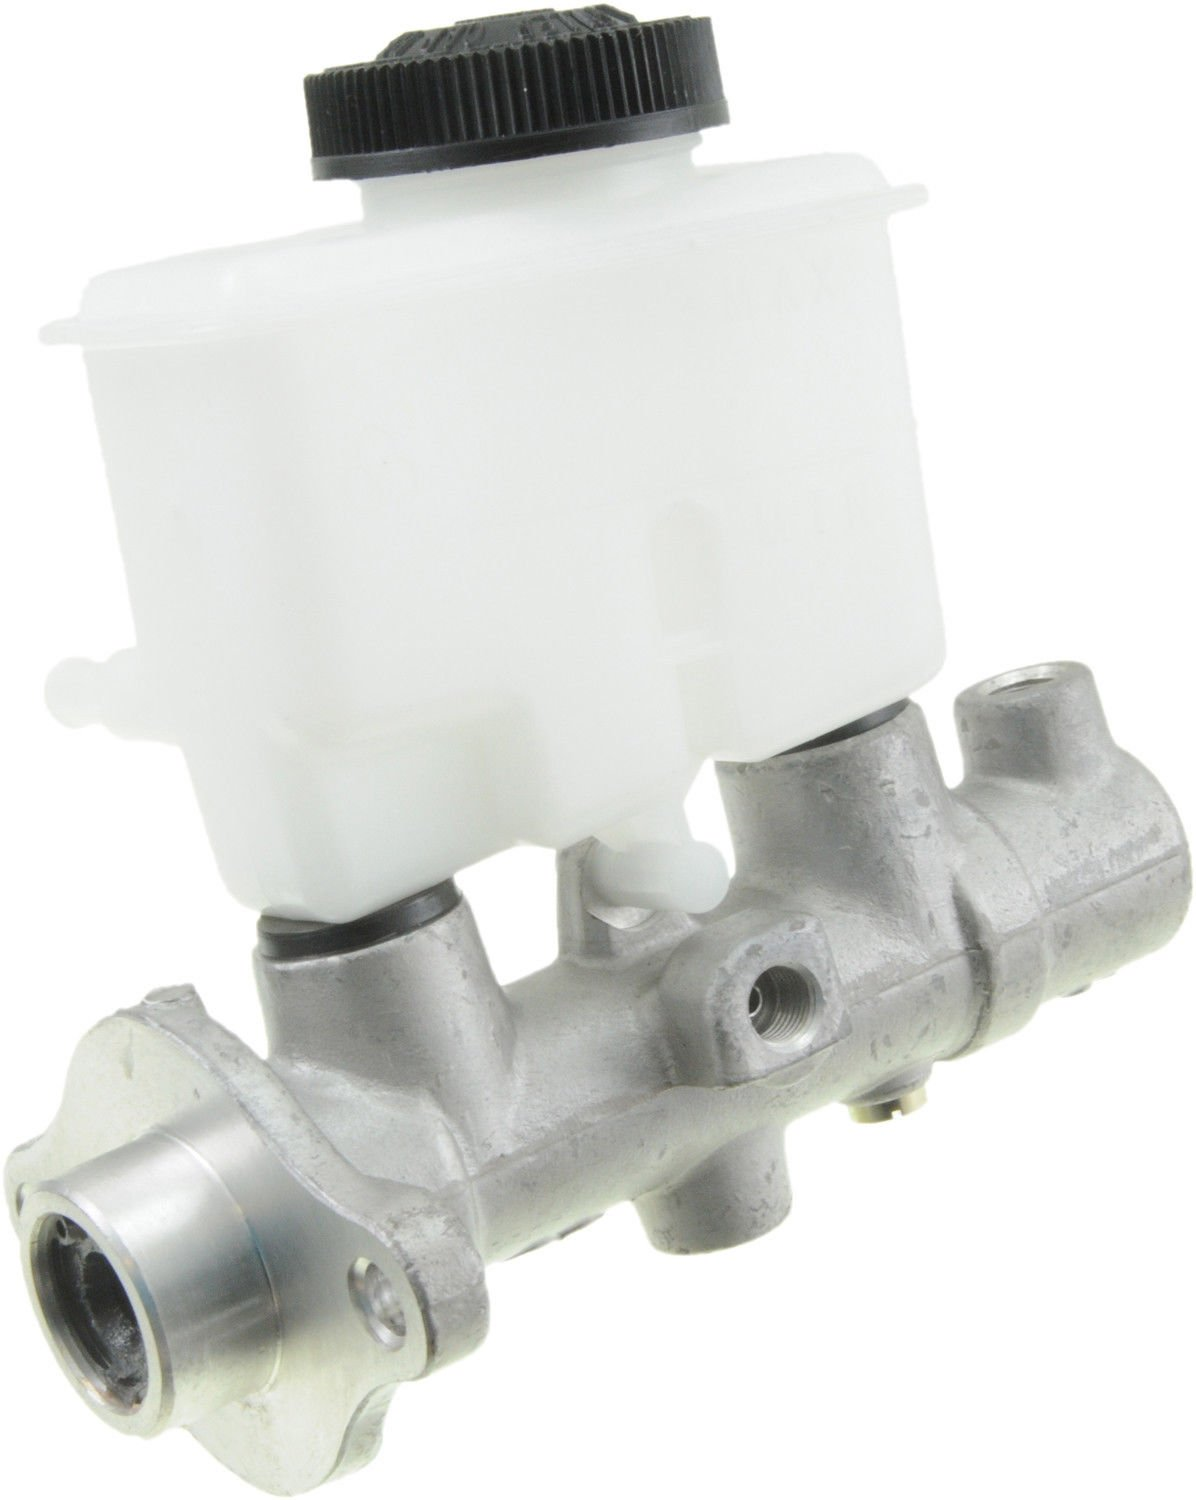 MC39950 1990-1995 Mazda 323 with manual trans MAZDA 1990-1994 Prot/ég/é with manual trans NAMCCO Brake Master Cylinder Compatible with FORD Escort To 11//01//1992-1992 with manual trans